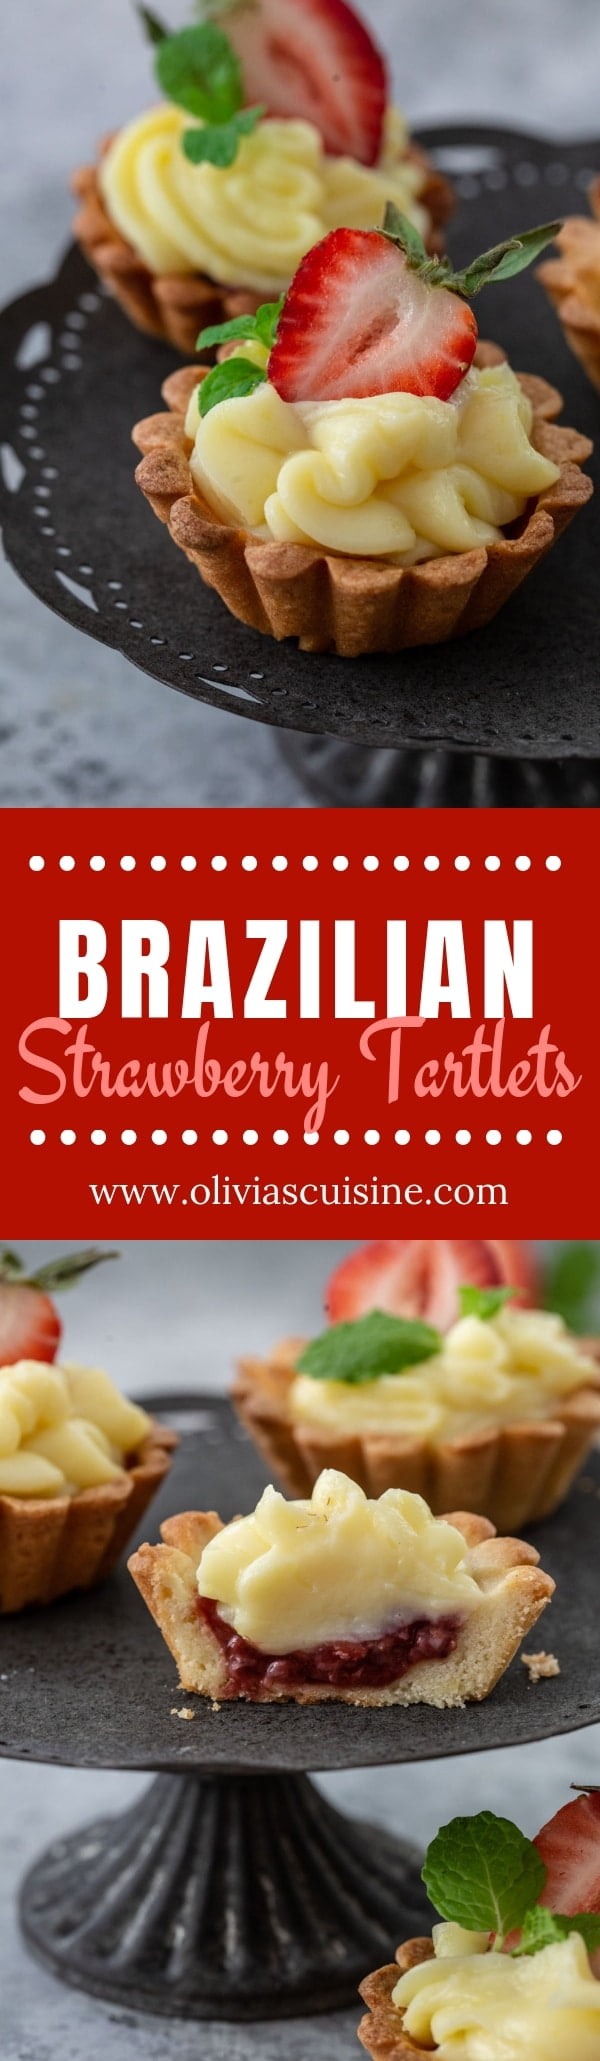 Brazilian Strawberry Tartlets | www.oliviascuisine.com | Tortinhas de Morango are a classic in every padaria. Not only they are delicious and undeniably cute, but they're also bite-sized, which makes them perfect for parties. (Recipe and food photography by @oliviascuisine.) #strawberry #strawberrydesserts #tartlets #tart #tarts #brazilian